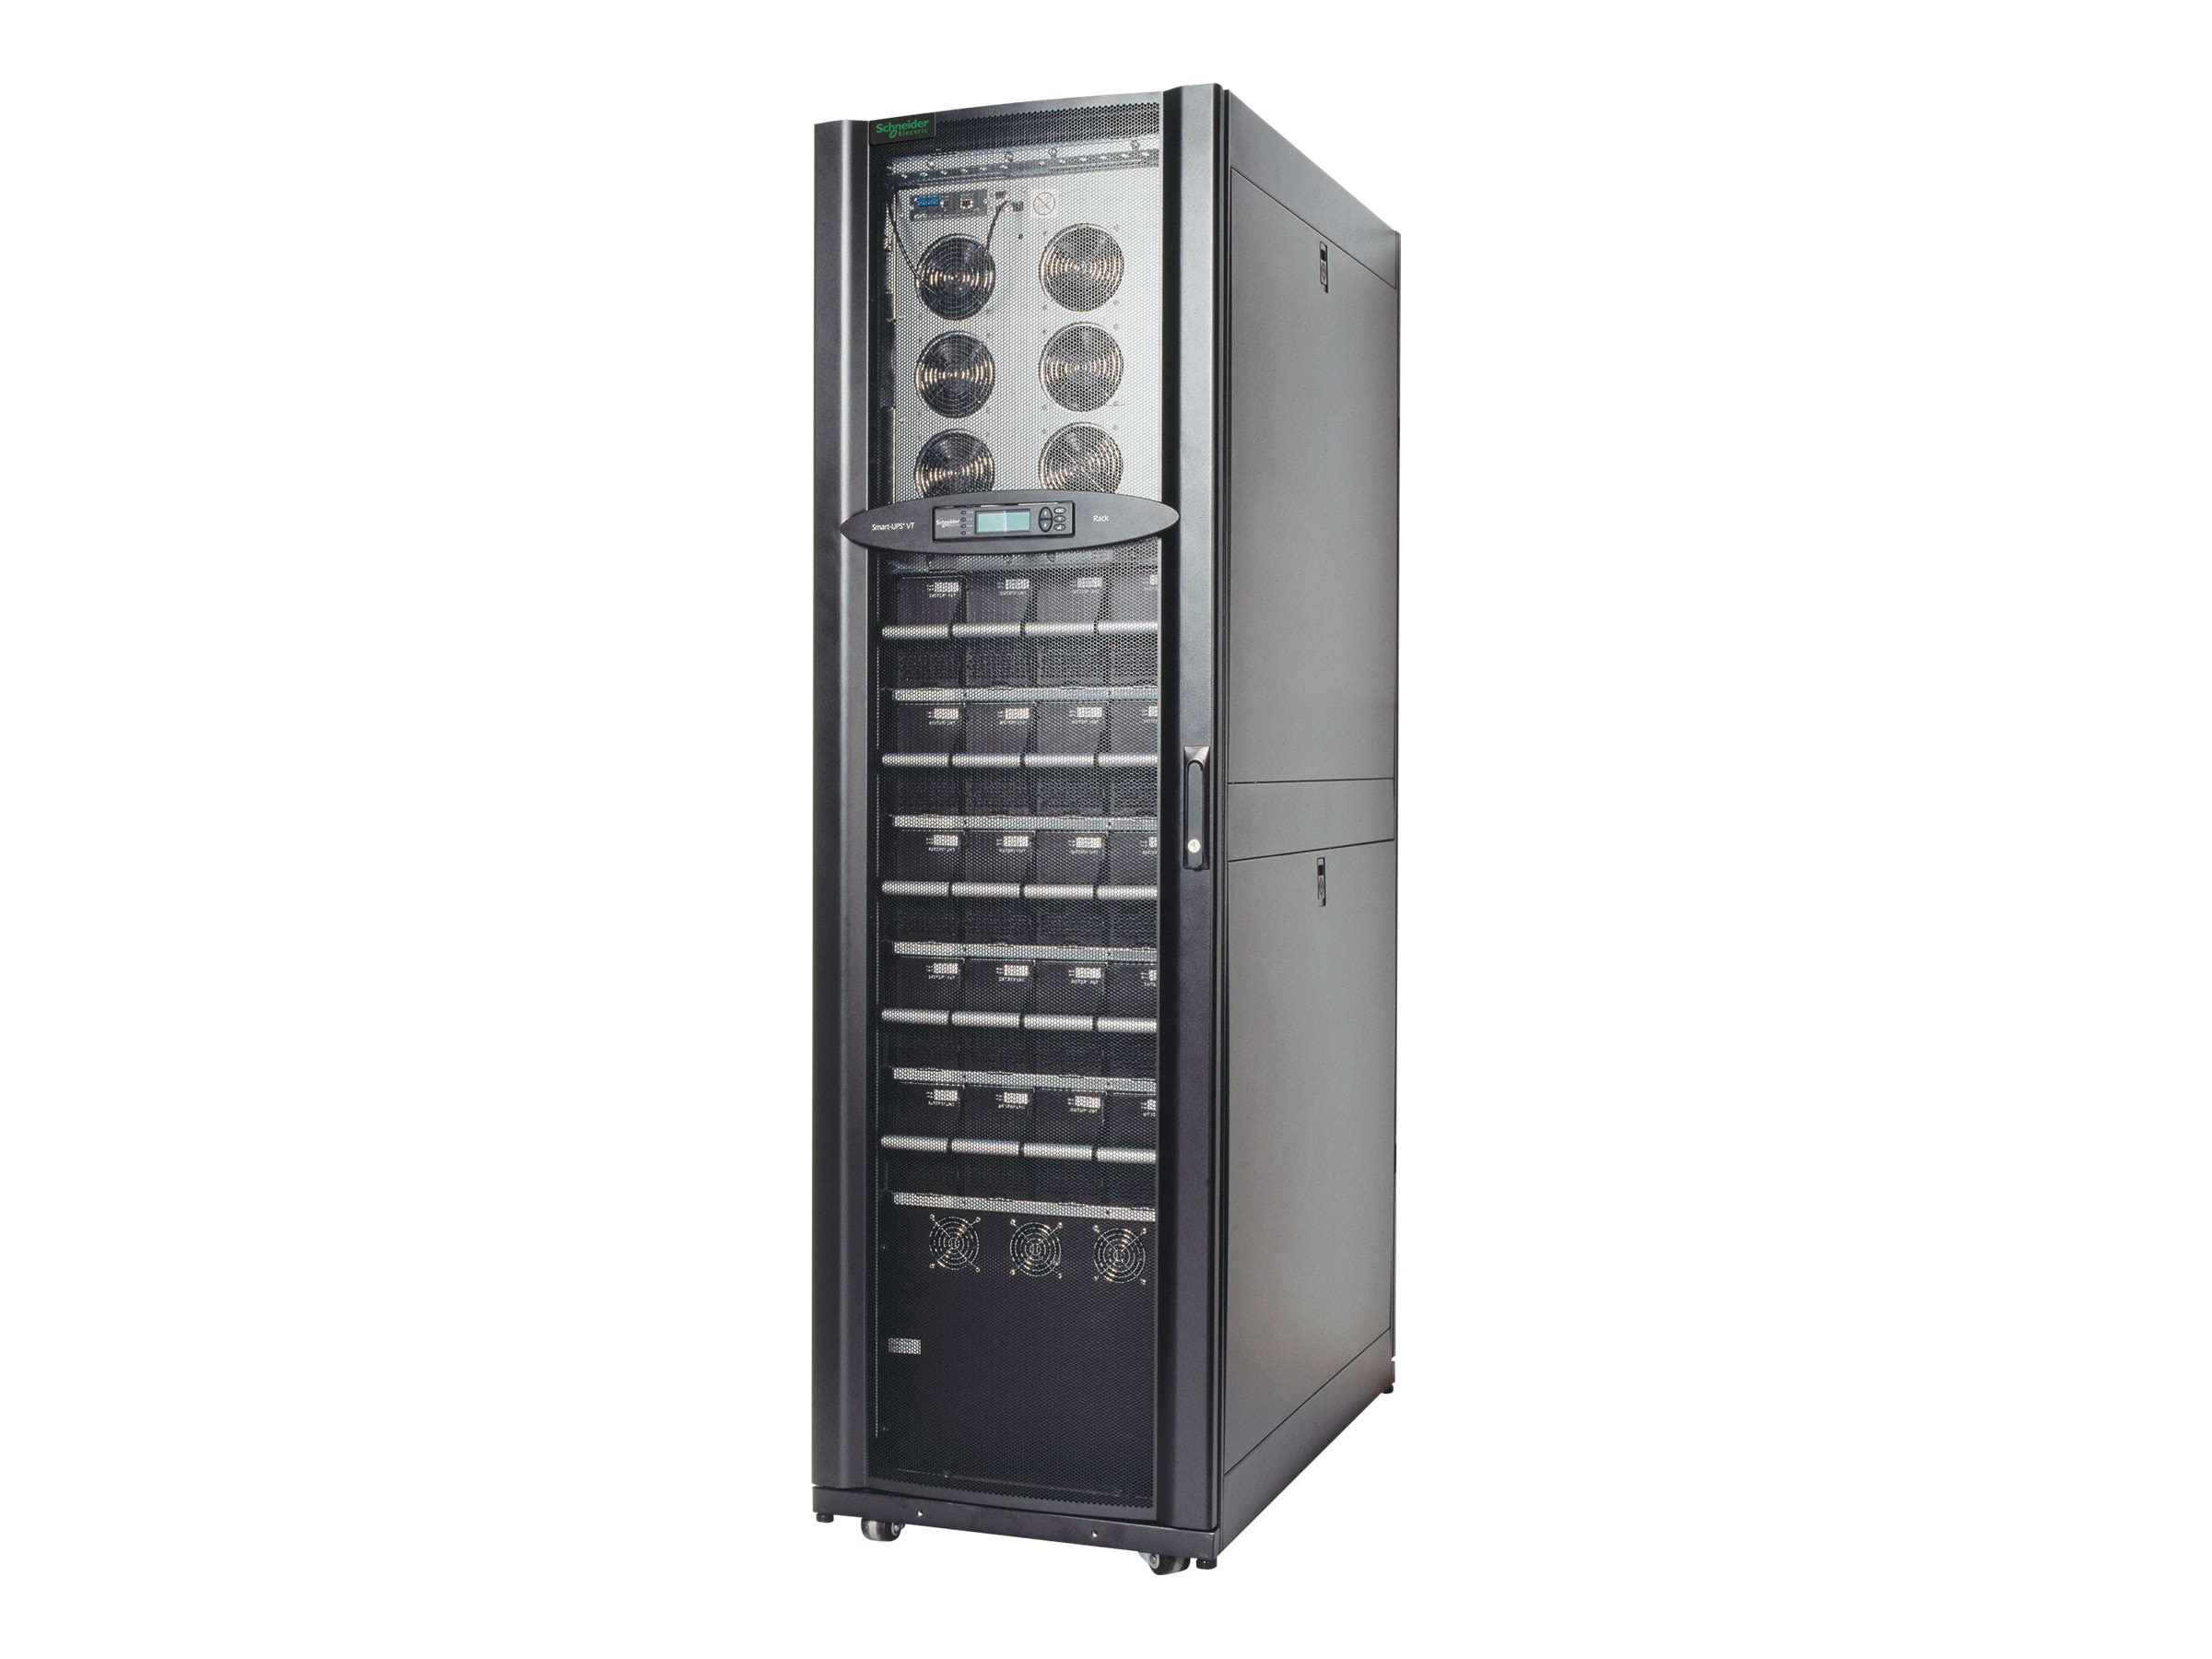 APC Smart-UPS VT 20kVA 480V In, 208V Out, Rack Mounted, (5) Battery Modules, PDU, Startup, SUVTR20KG5B5S